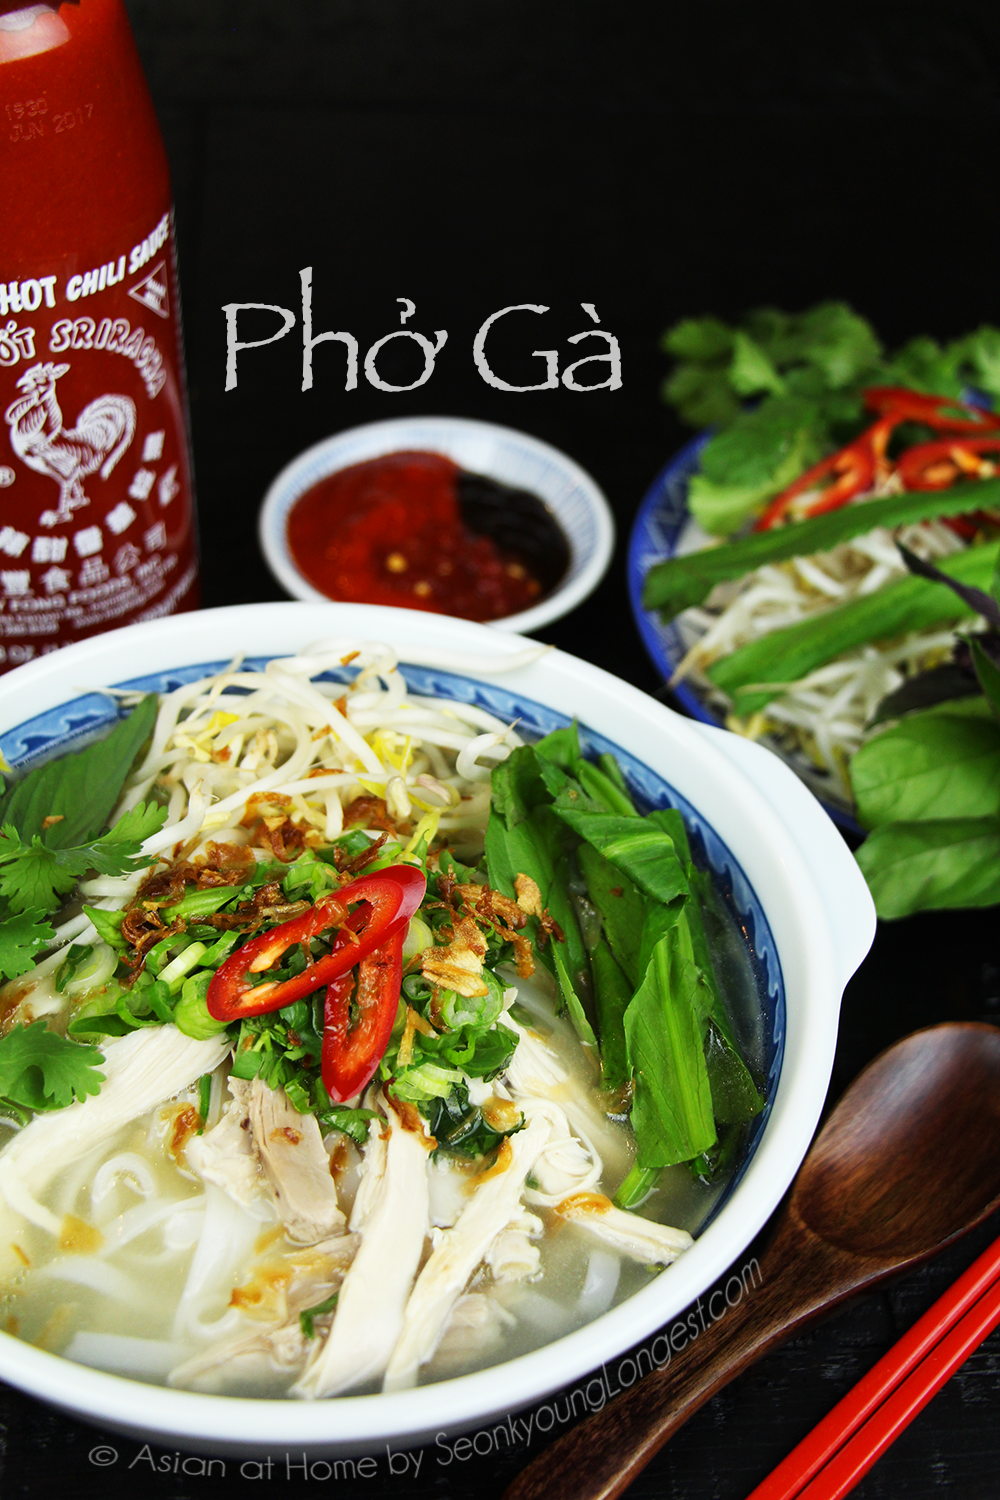 Chicken Pho Recipe & Video (Phở Gà) - Seonkyoung Longest